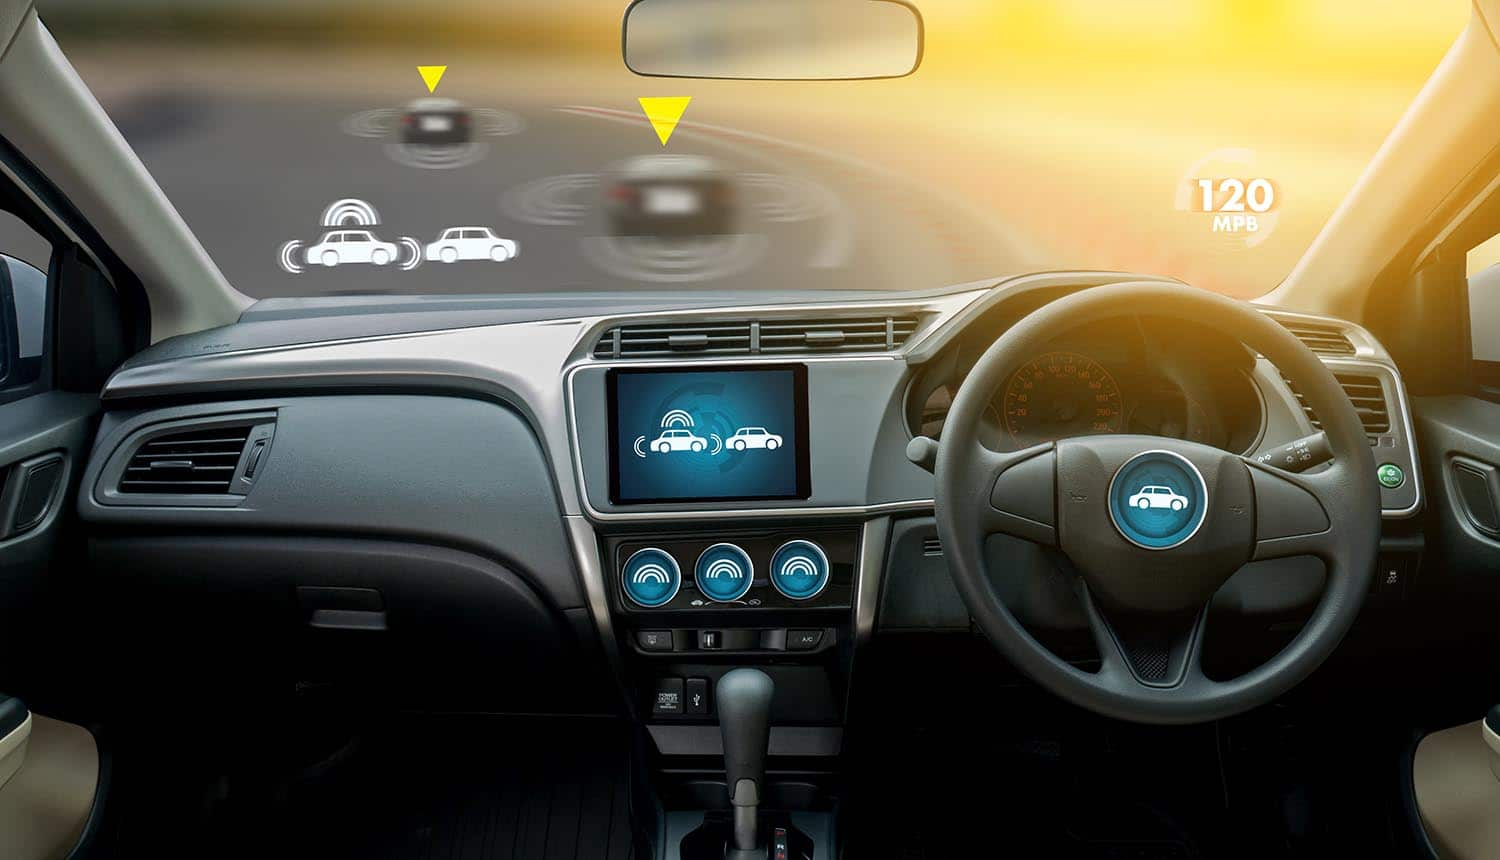 Autonomous vehicles and digital speedometer showing cybersecurity challenges